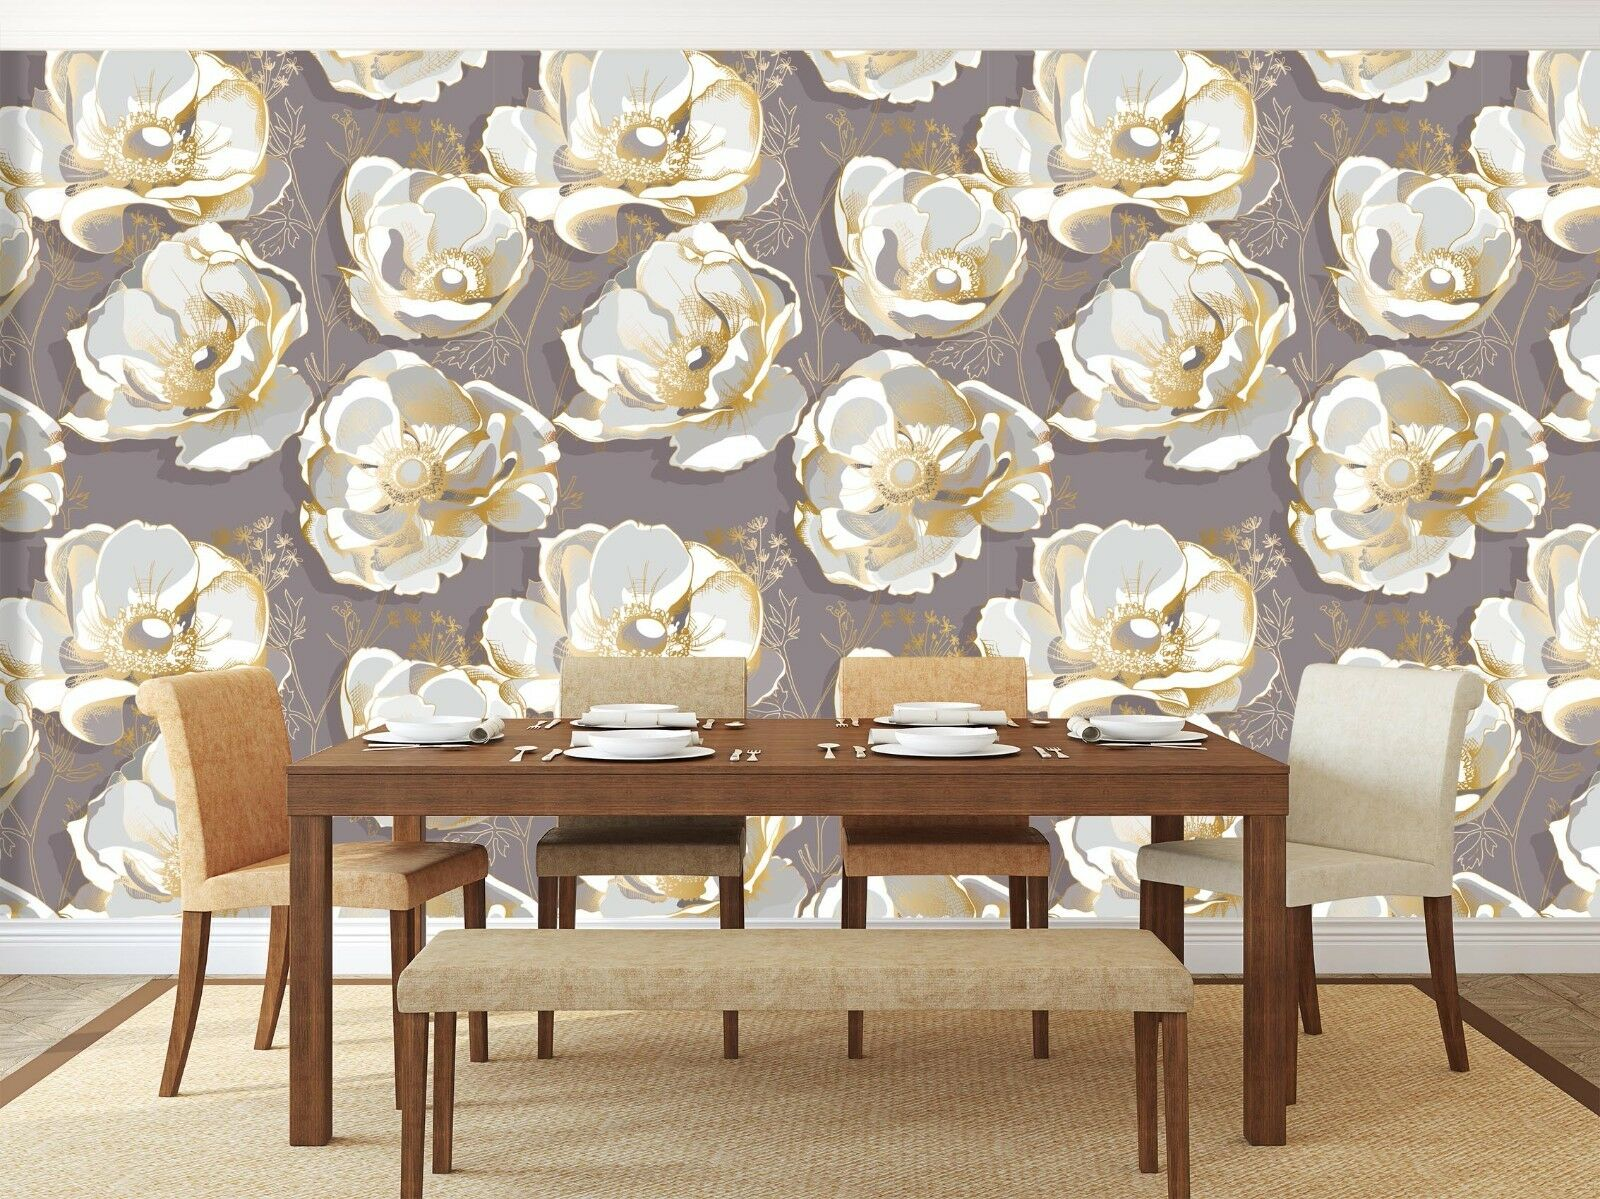 3D White Flower 766 Wallpaper Mural Paper Wall Print Murals UK Summer